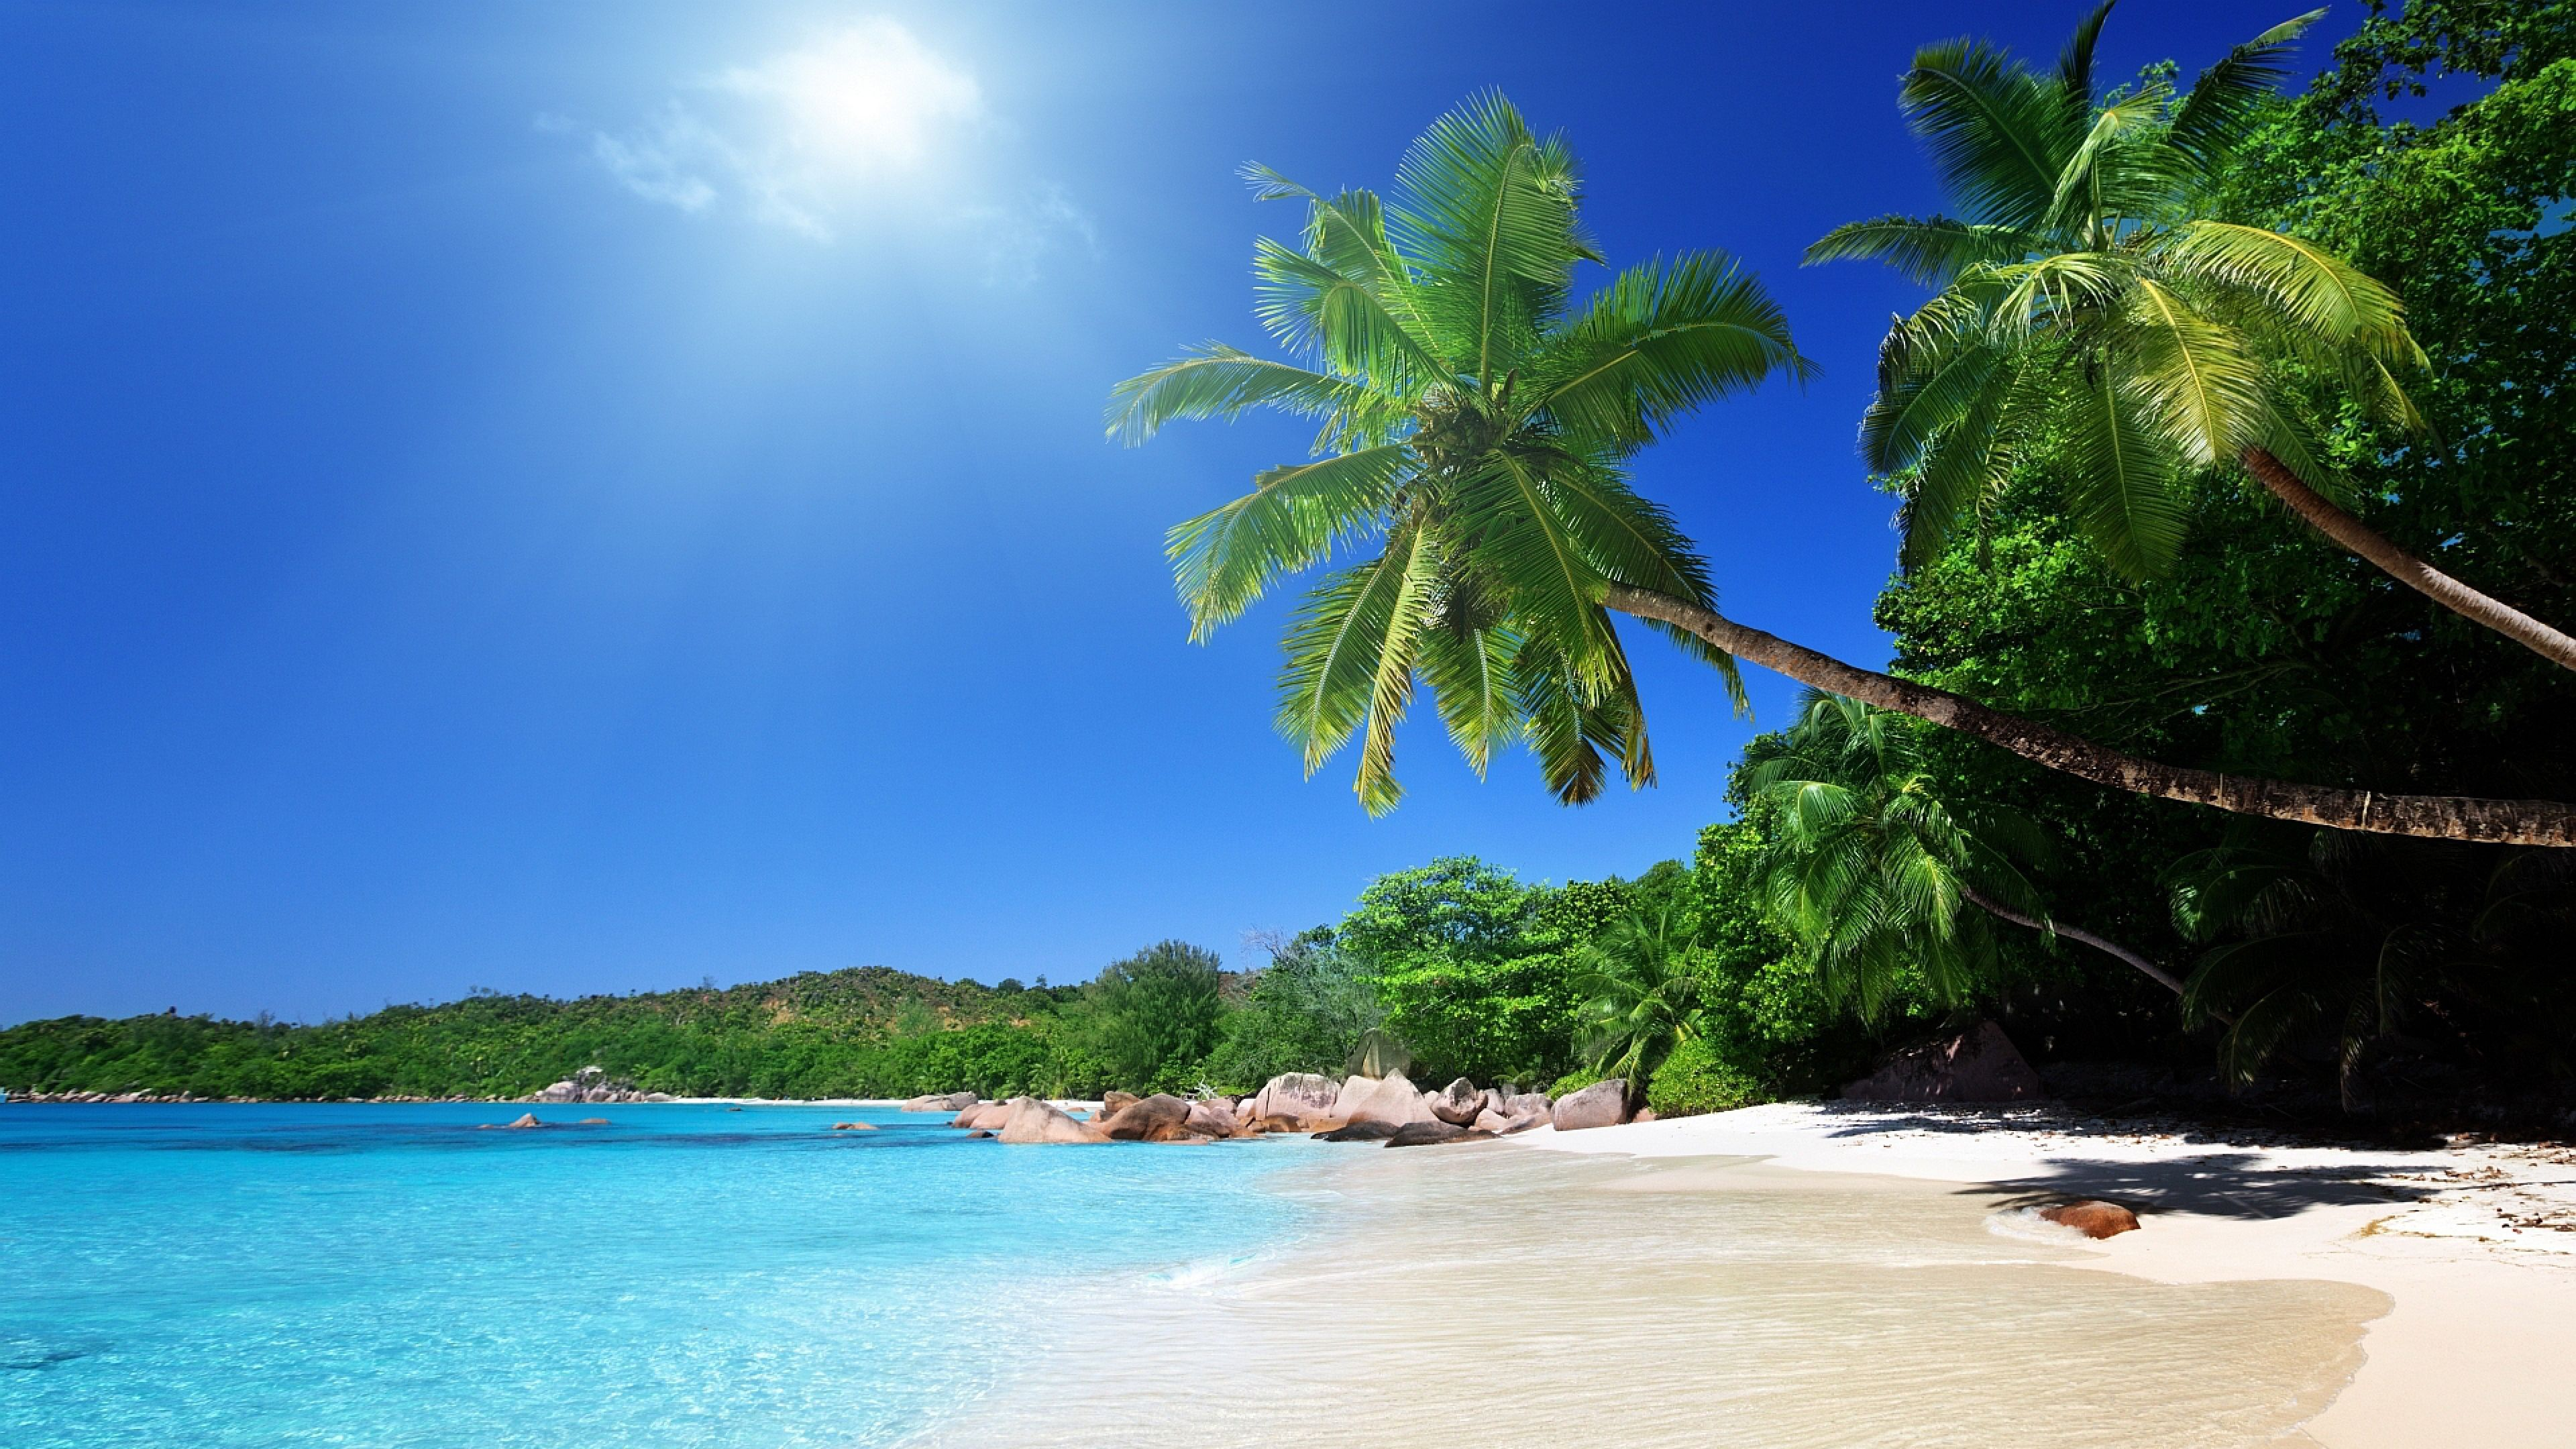 Tropical Beach 4k Ultra Hd Wallpaper Uhd